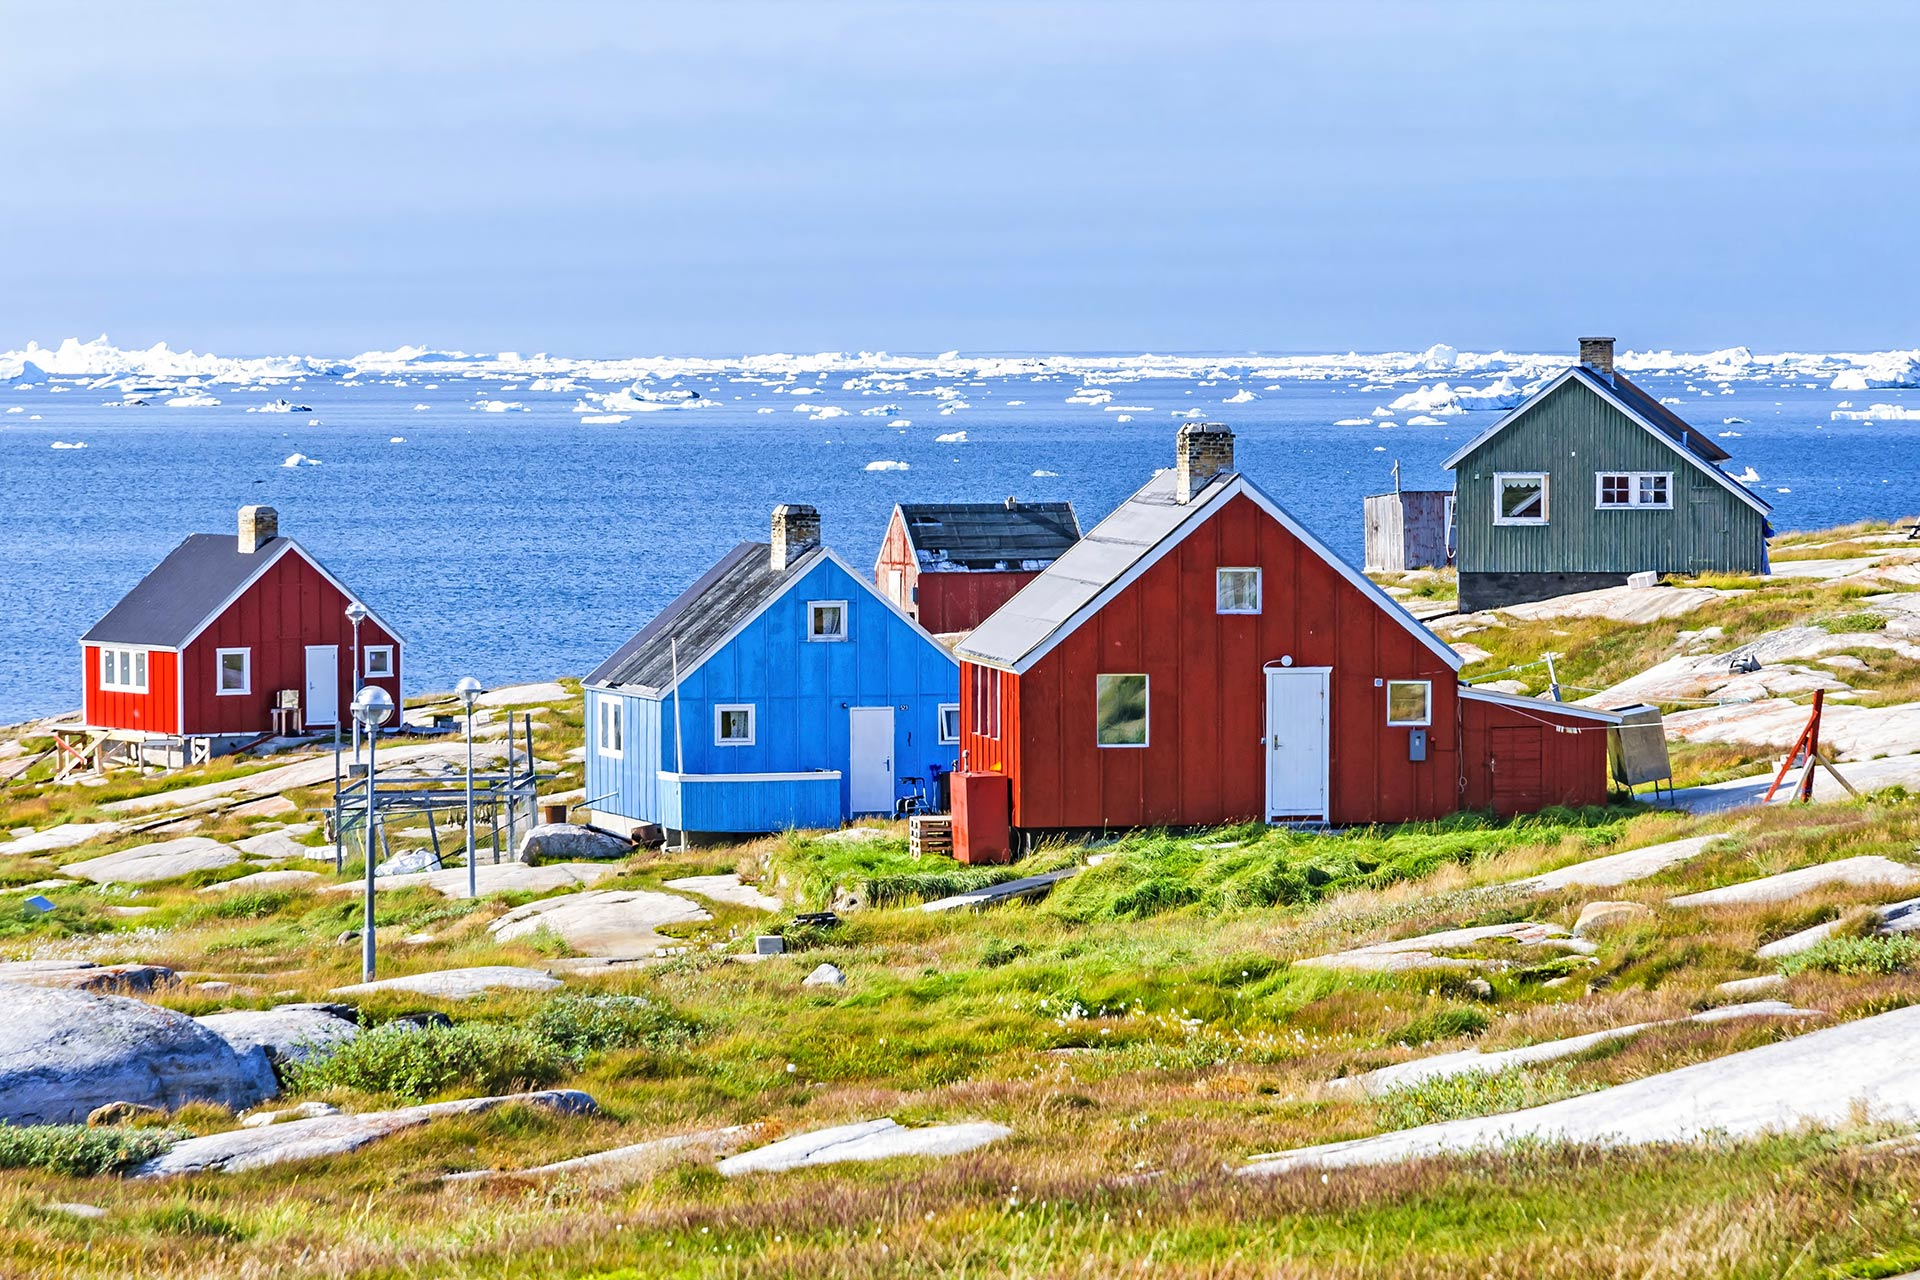 The colorful houses of Rodebay, Greenland